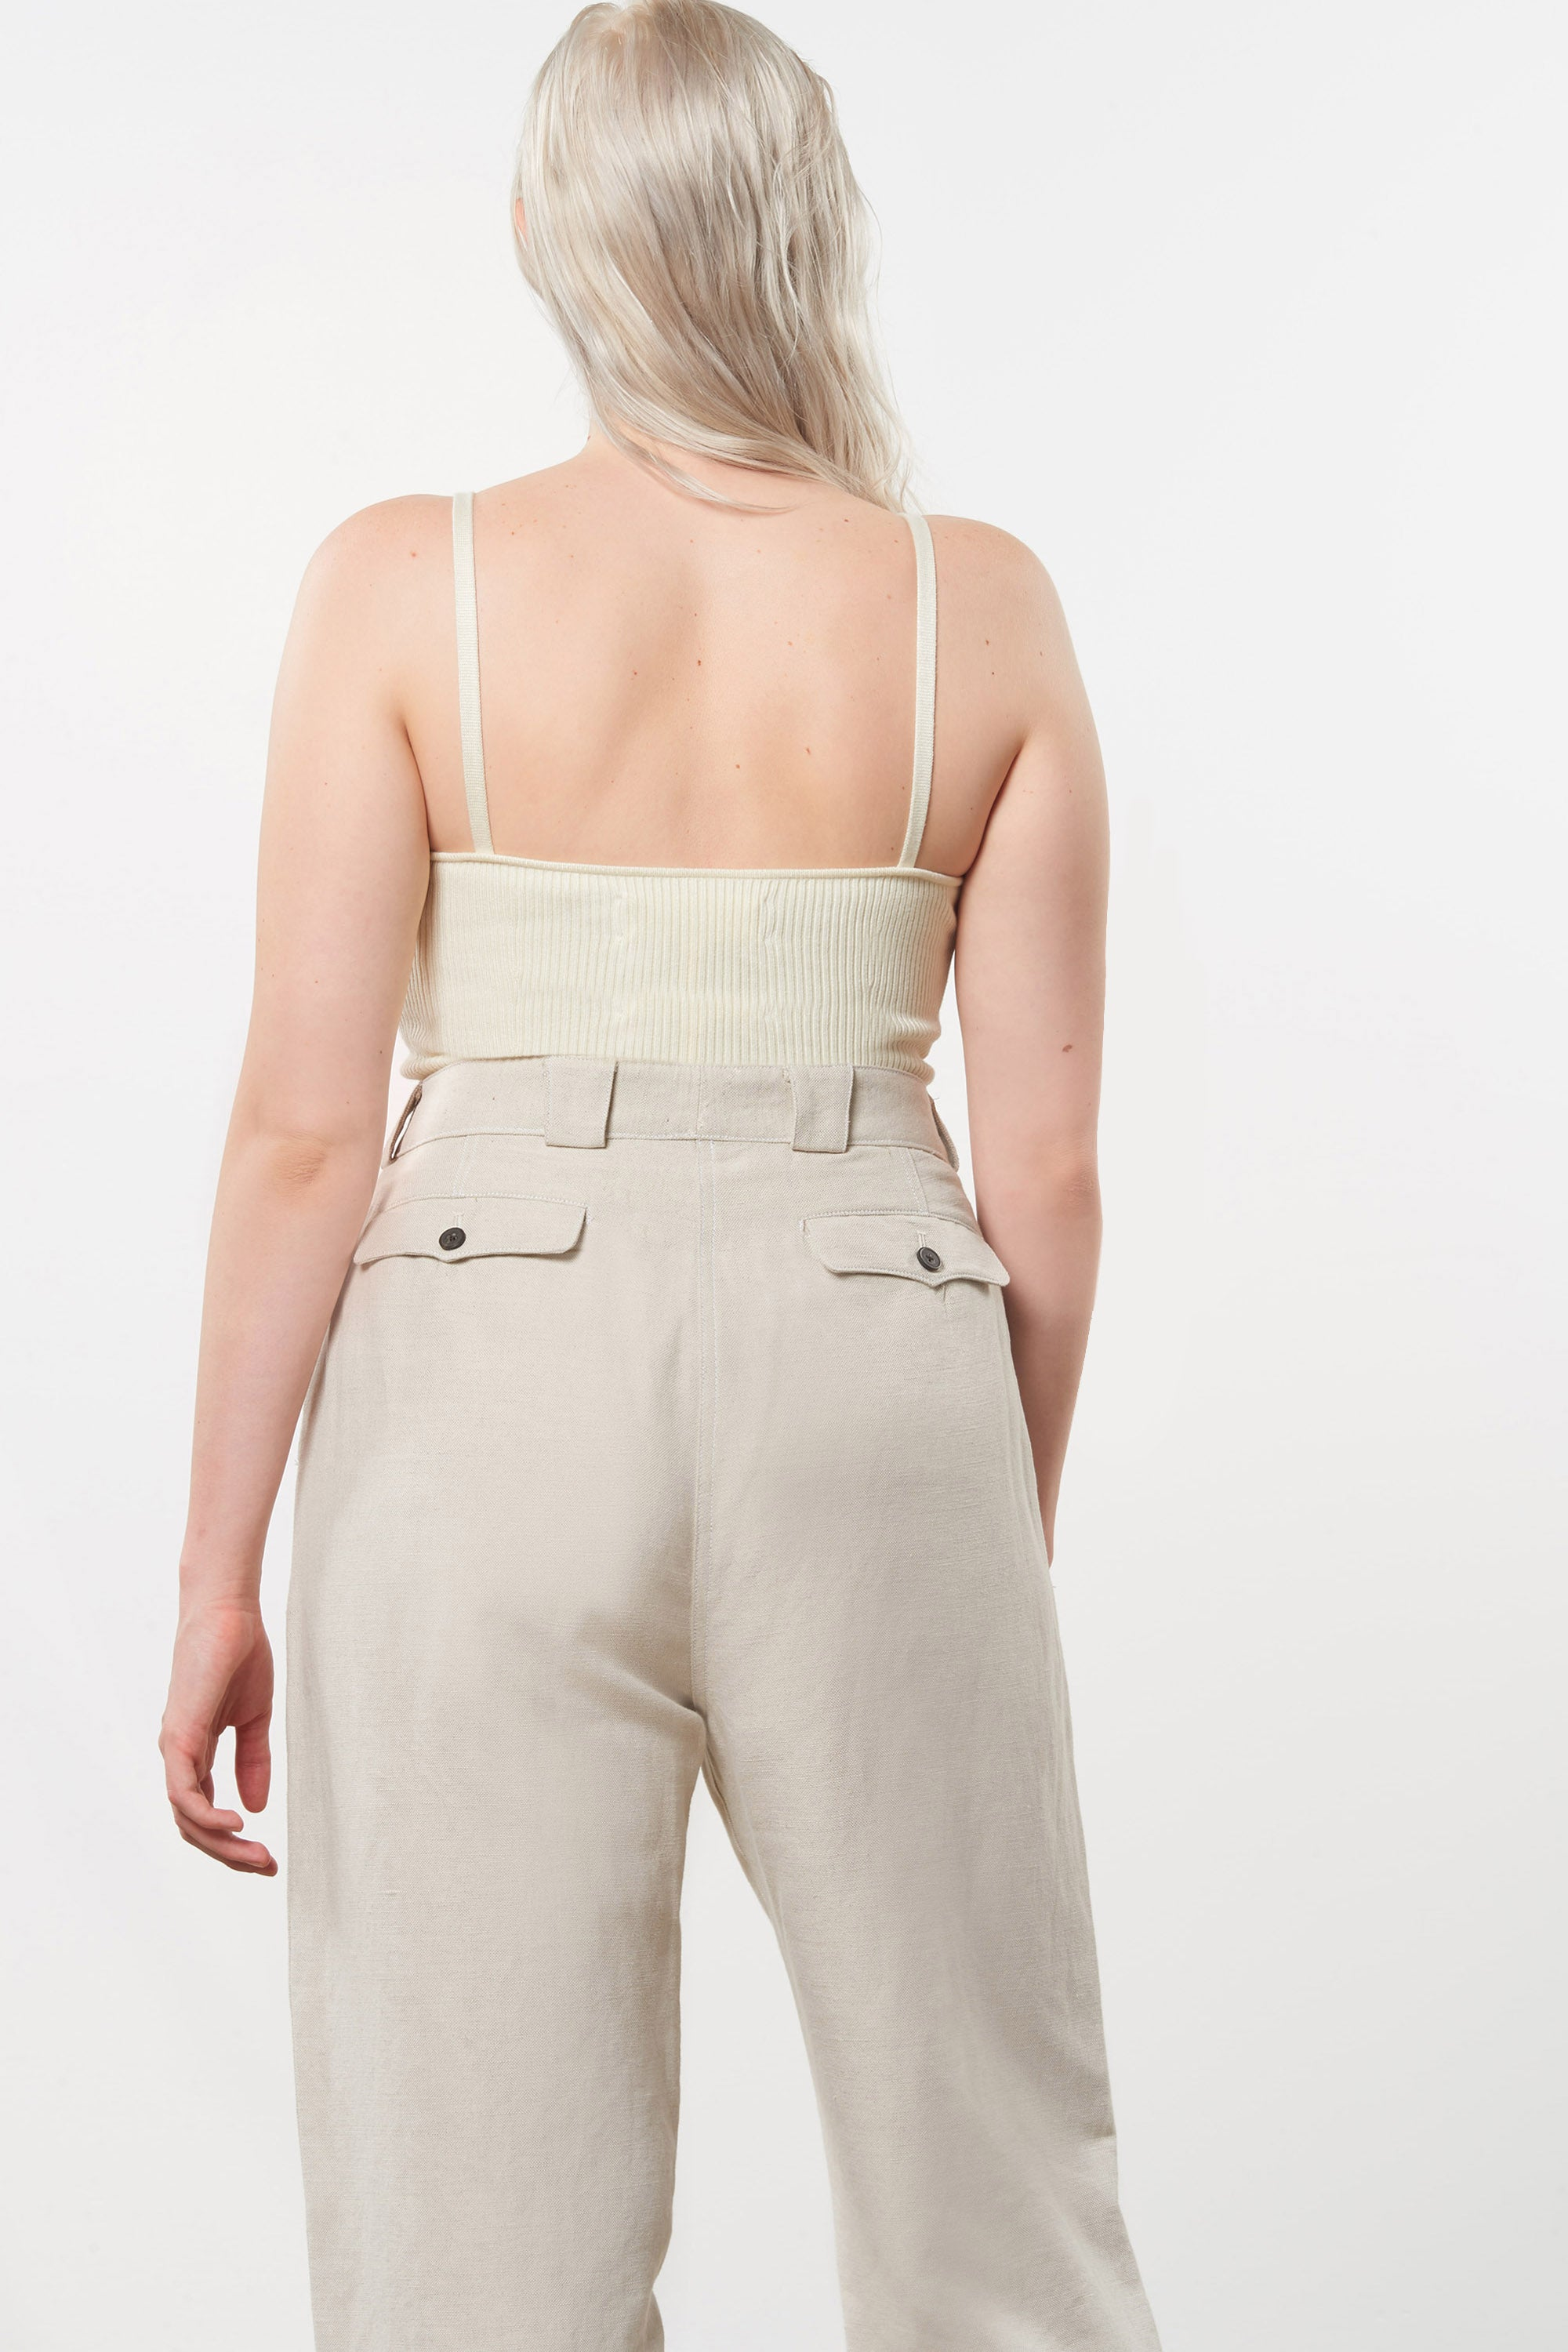 Mara Hoffman Extended Beige Jade Pant in linen and organic cotton (back pocket detail)